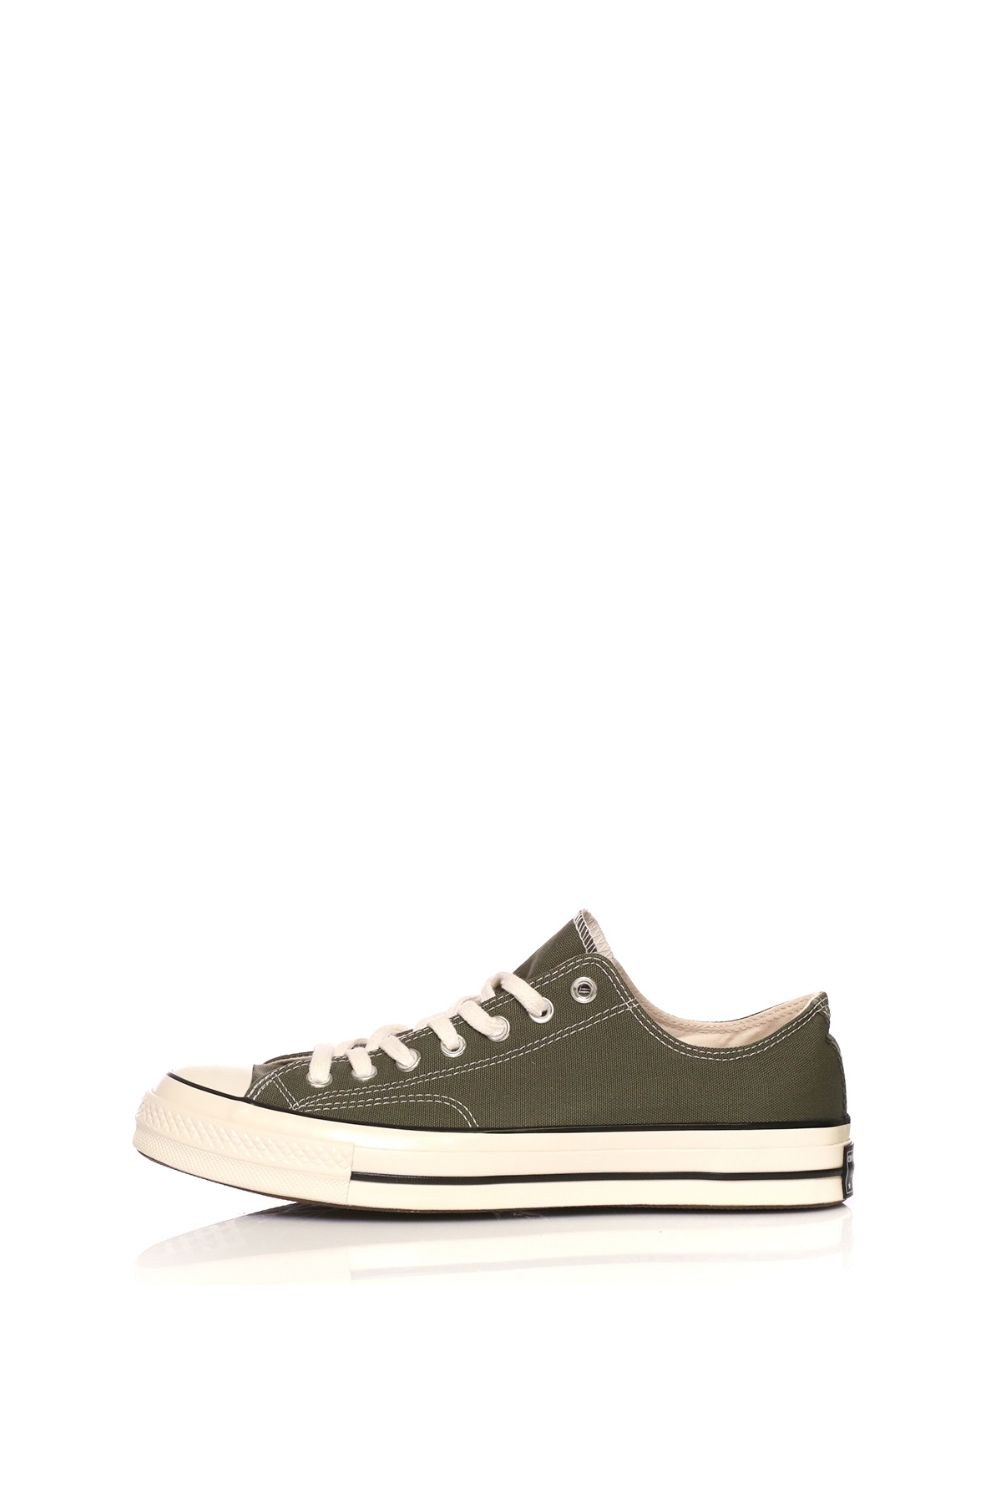 -40% Collective Online CONVERSE – Ανδρικά παπούτσια Chuck 70 χακί 96cd823bd01